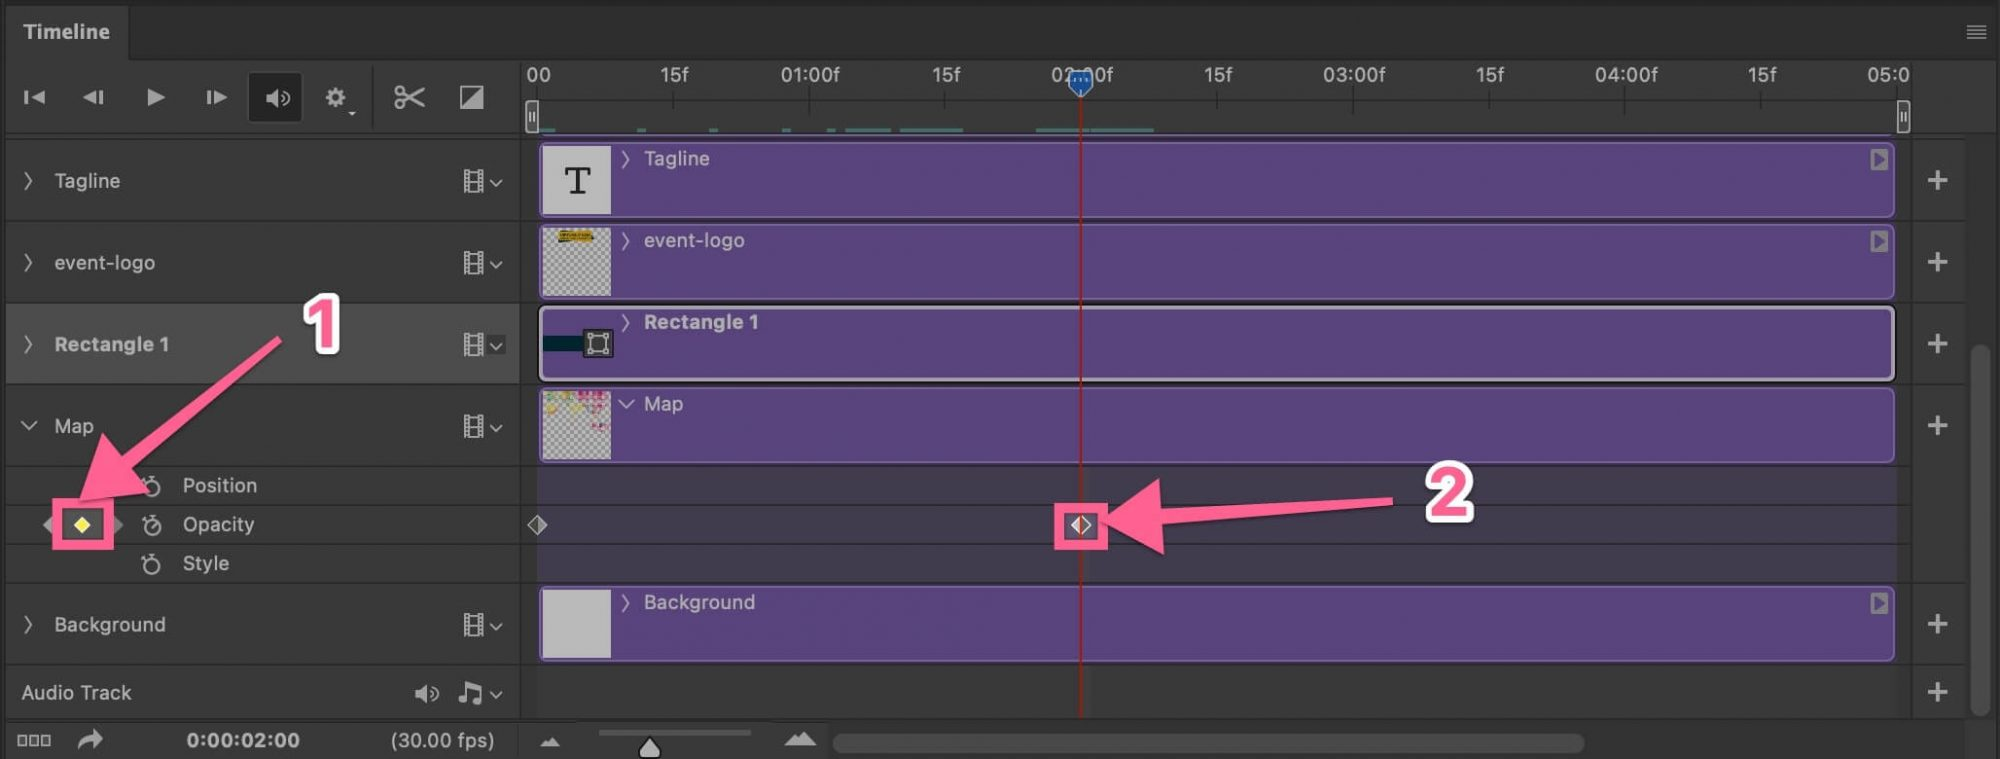 How to end or stop opacity in timeline in Photoshop